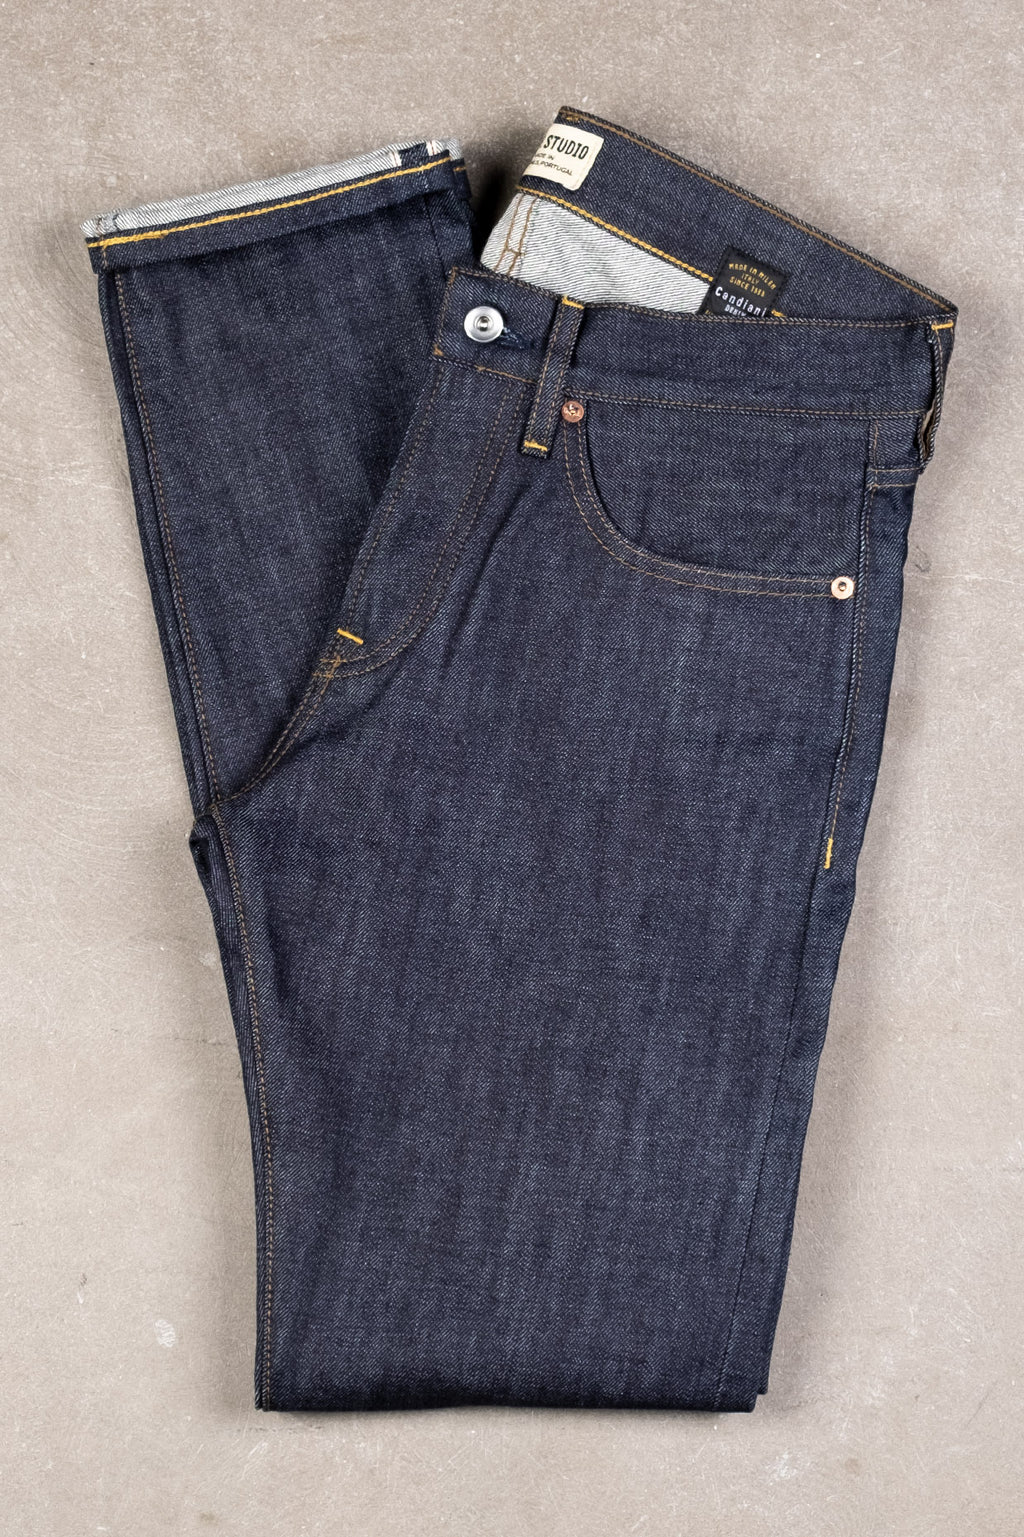 M3 13oz Indigo Selvedge - Unwashed